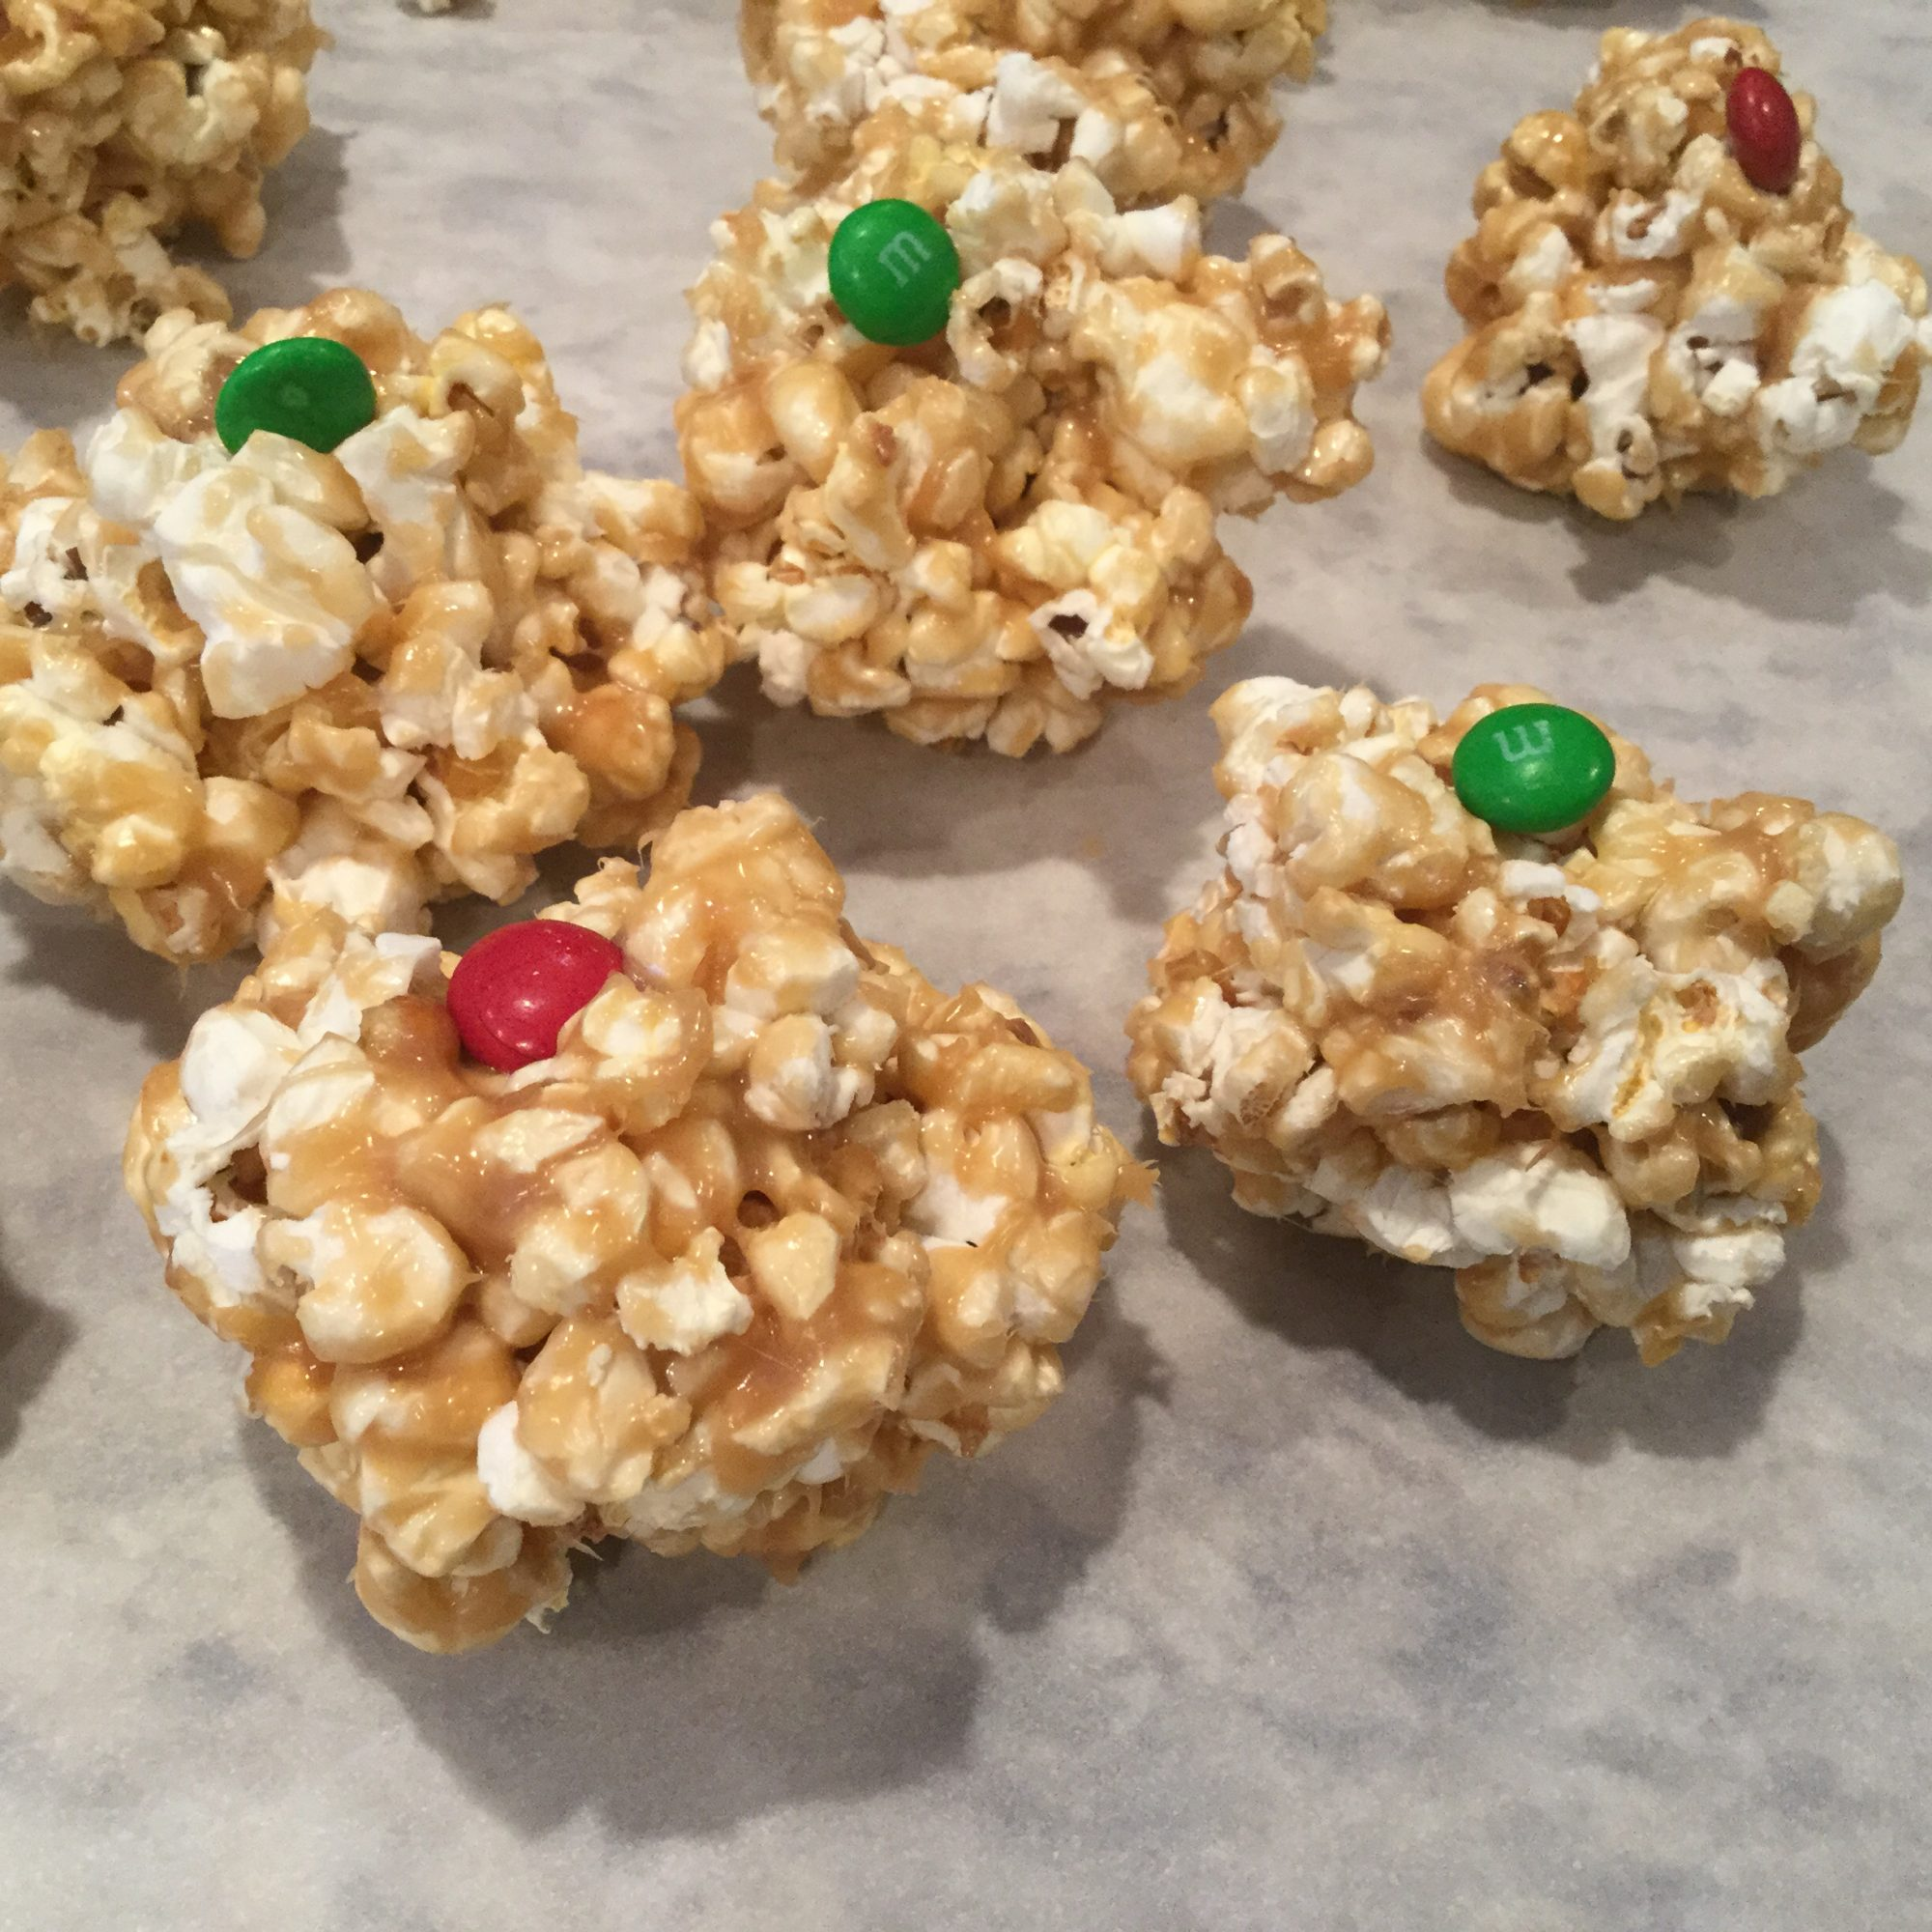 Caramel Popcorn Balls with red and green candies